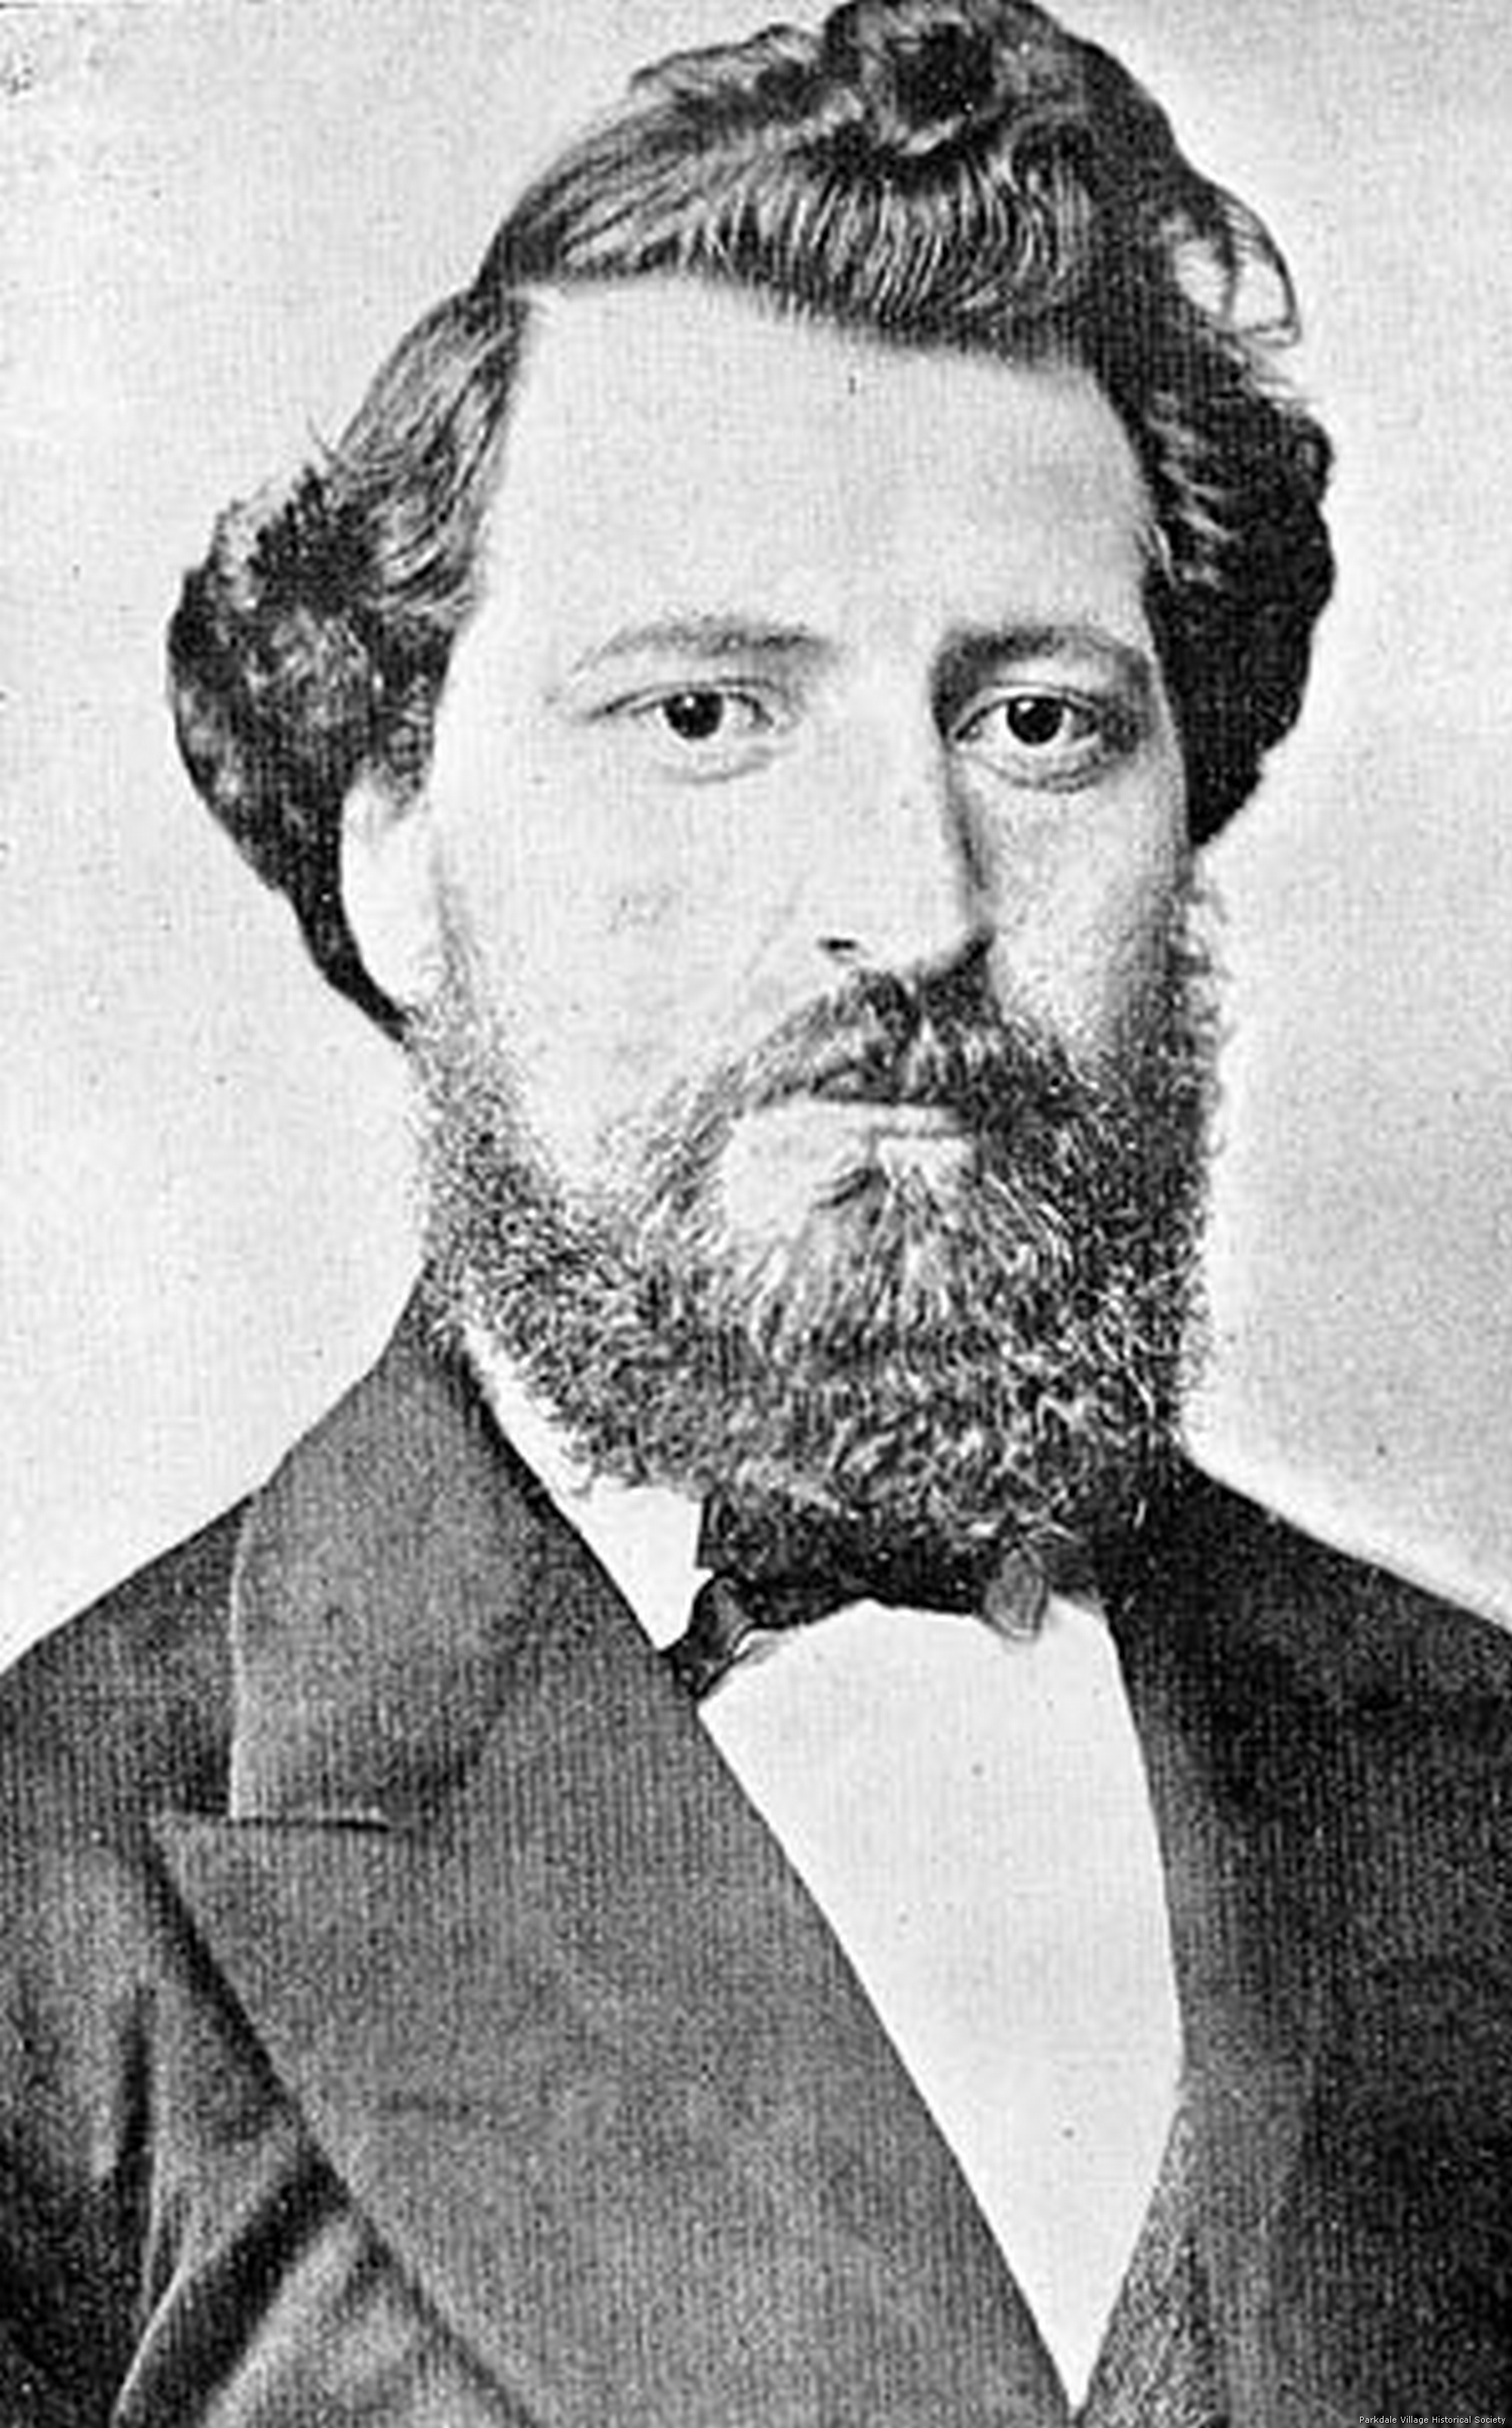 louis riel and gabriel dumont essay Louis riel, a controversial métis mystic and visionary, fought for his people's  rights against an encroaching tide of white settlers hunter and métis leader  gabriel.